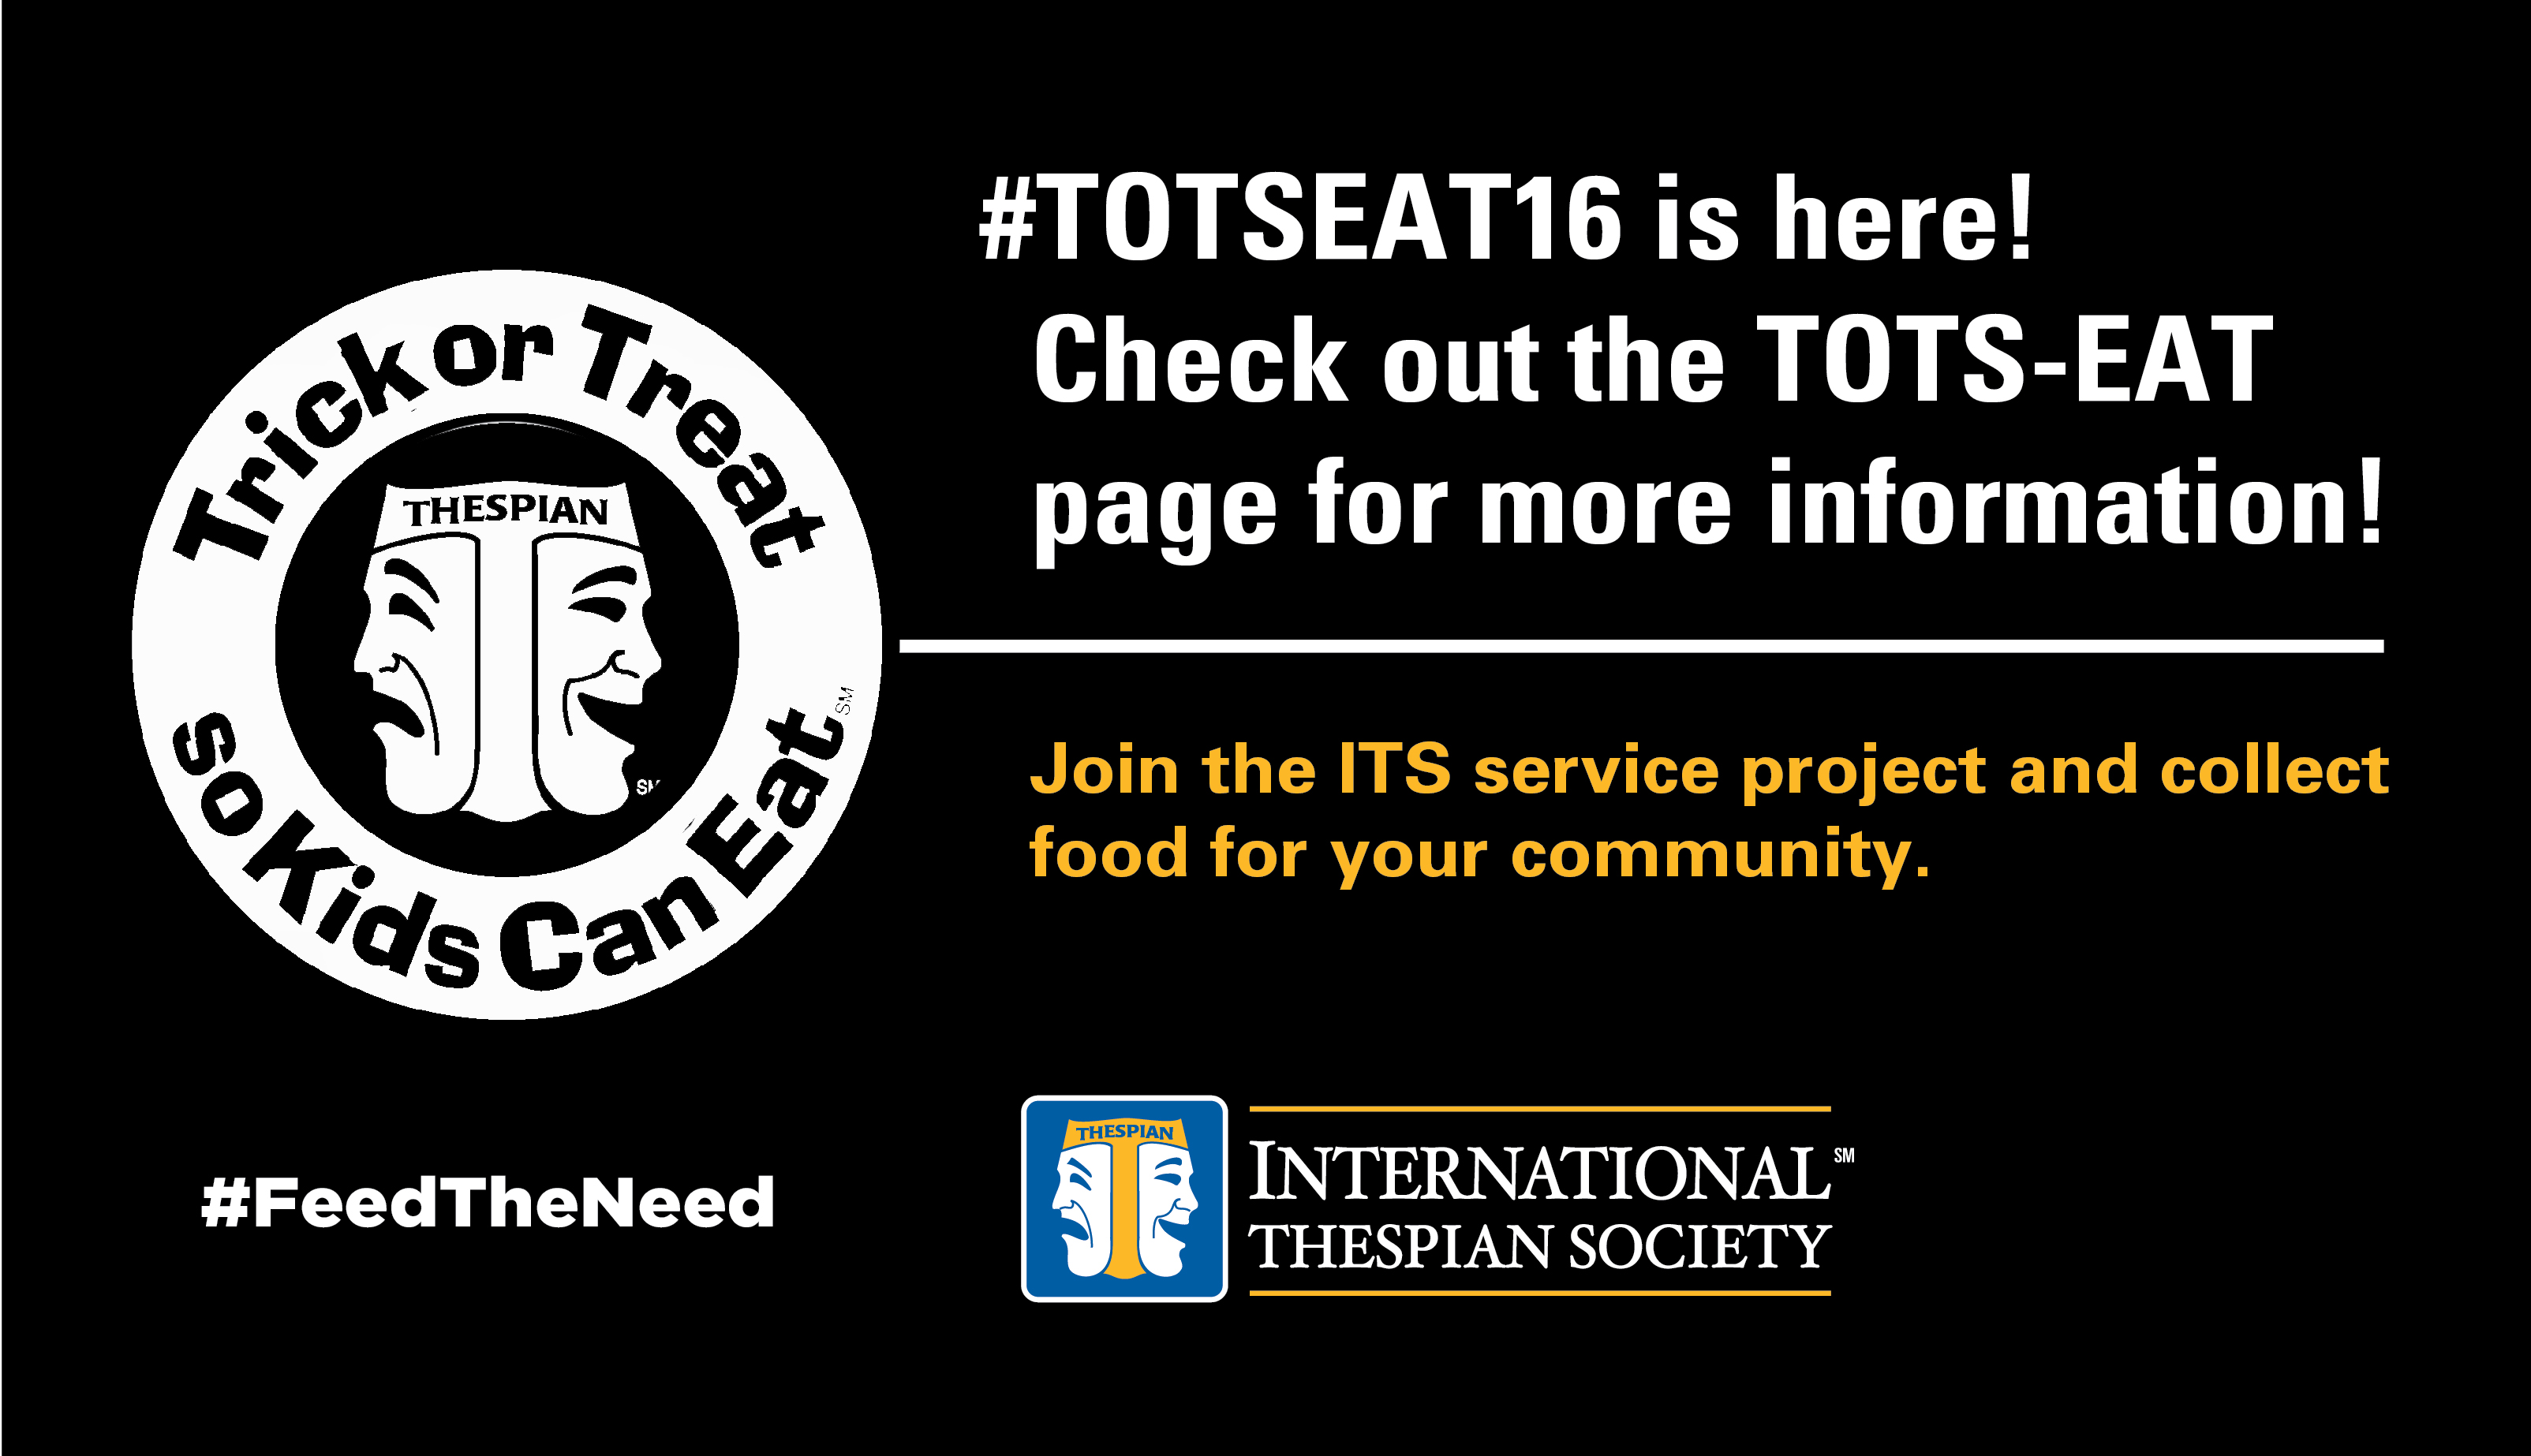 Trick or Treat so Kids Can Eat. #TOTSEAT16 is here! Check out the TOTS-EAT page for more information. Join the International Thespian Society service project and collect food for your community. #FeedTheNeed https://www.schooltheatre.org/programs/totseat